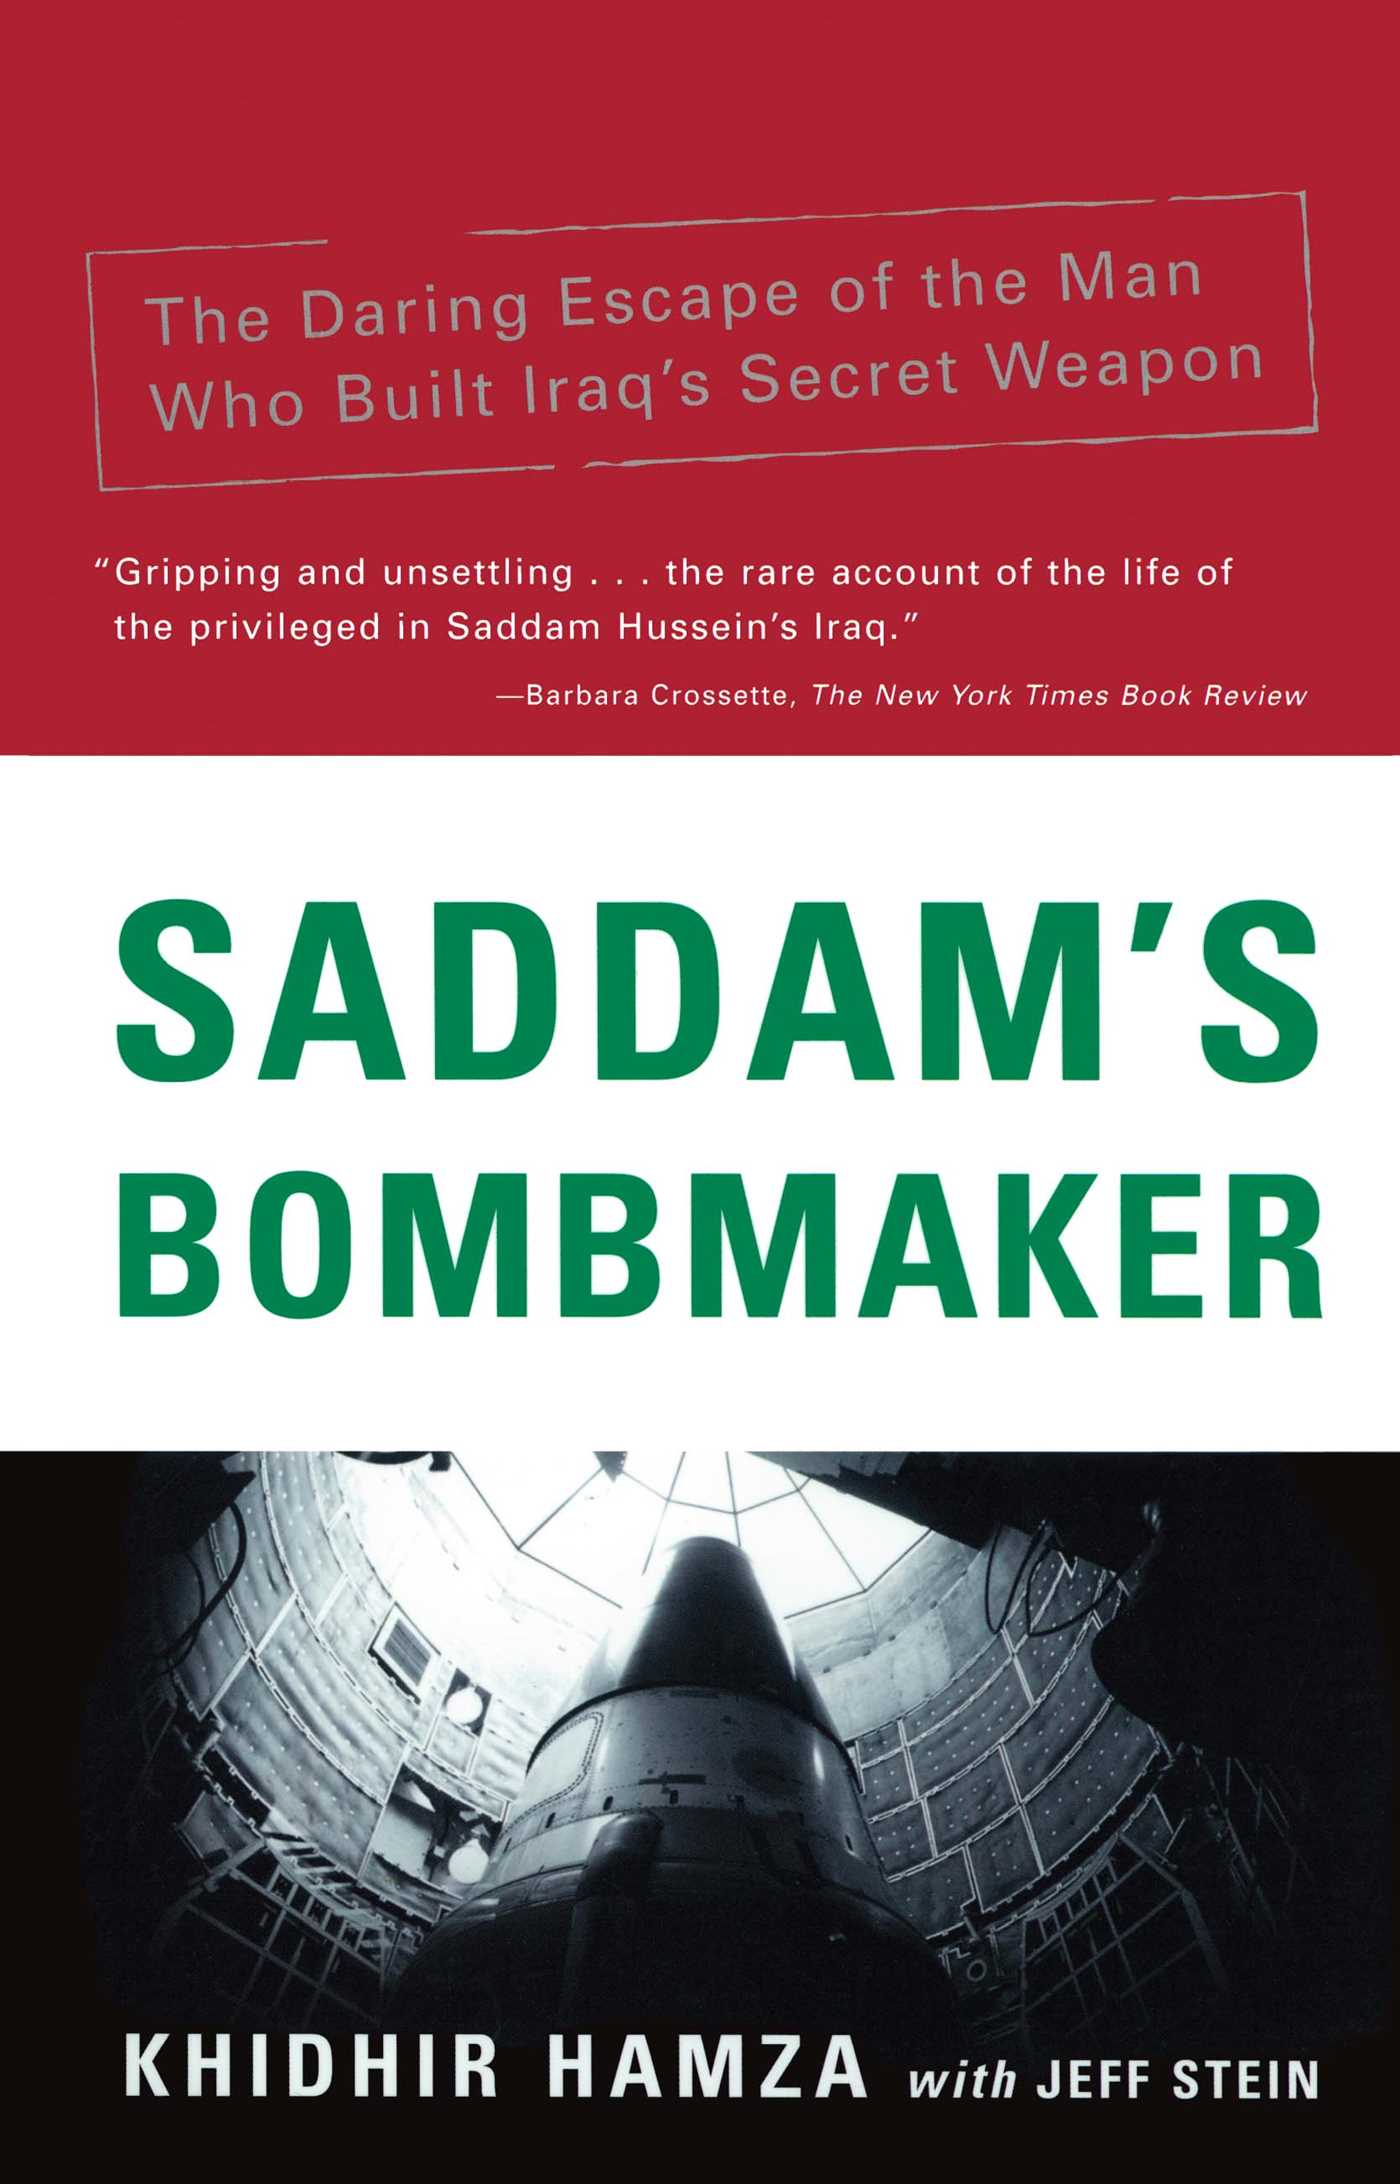 Saddams bombmaker 9780743211352 hr